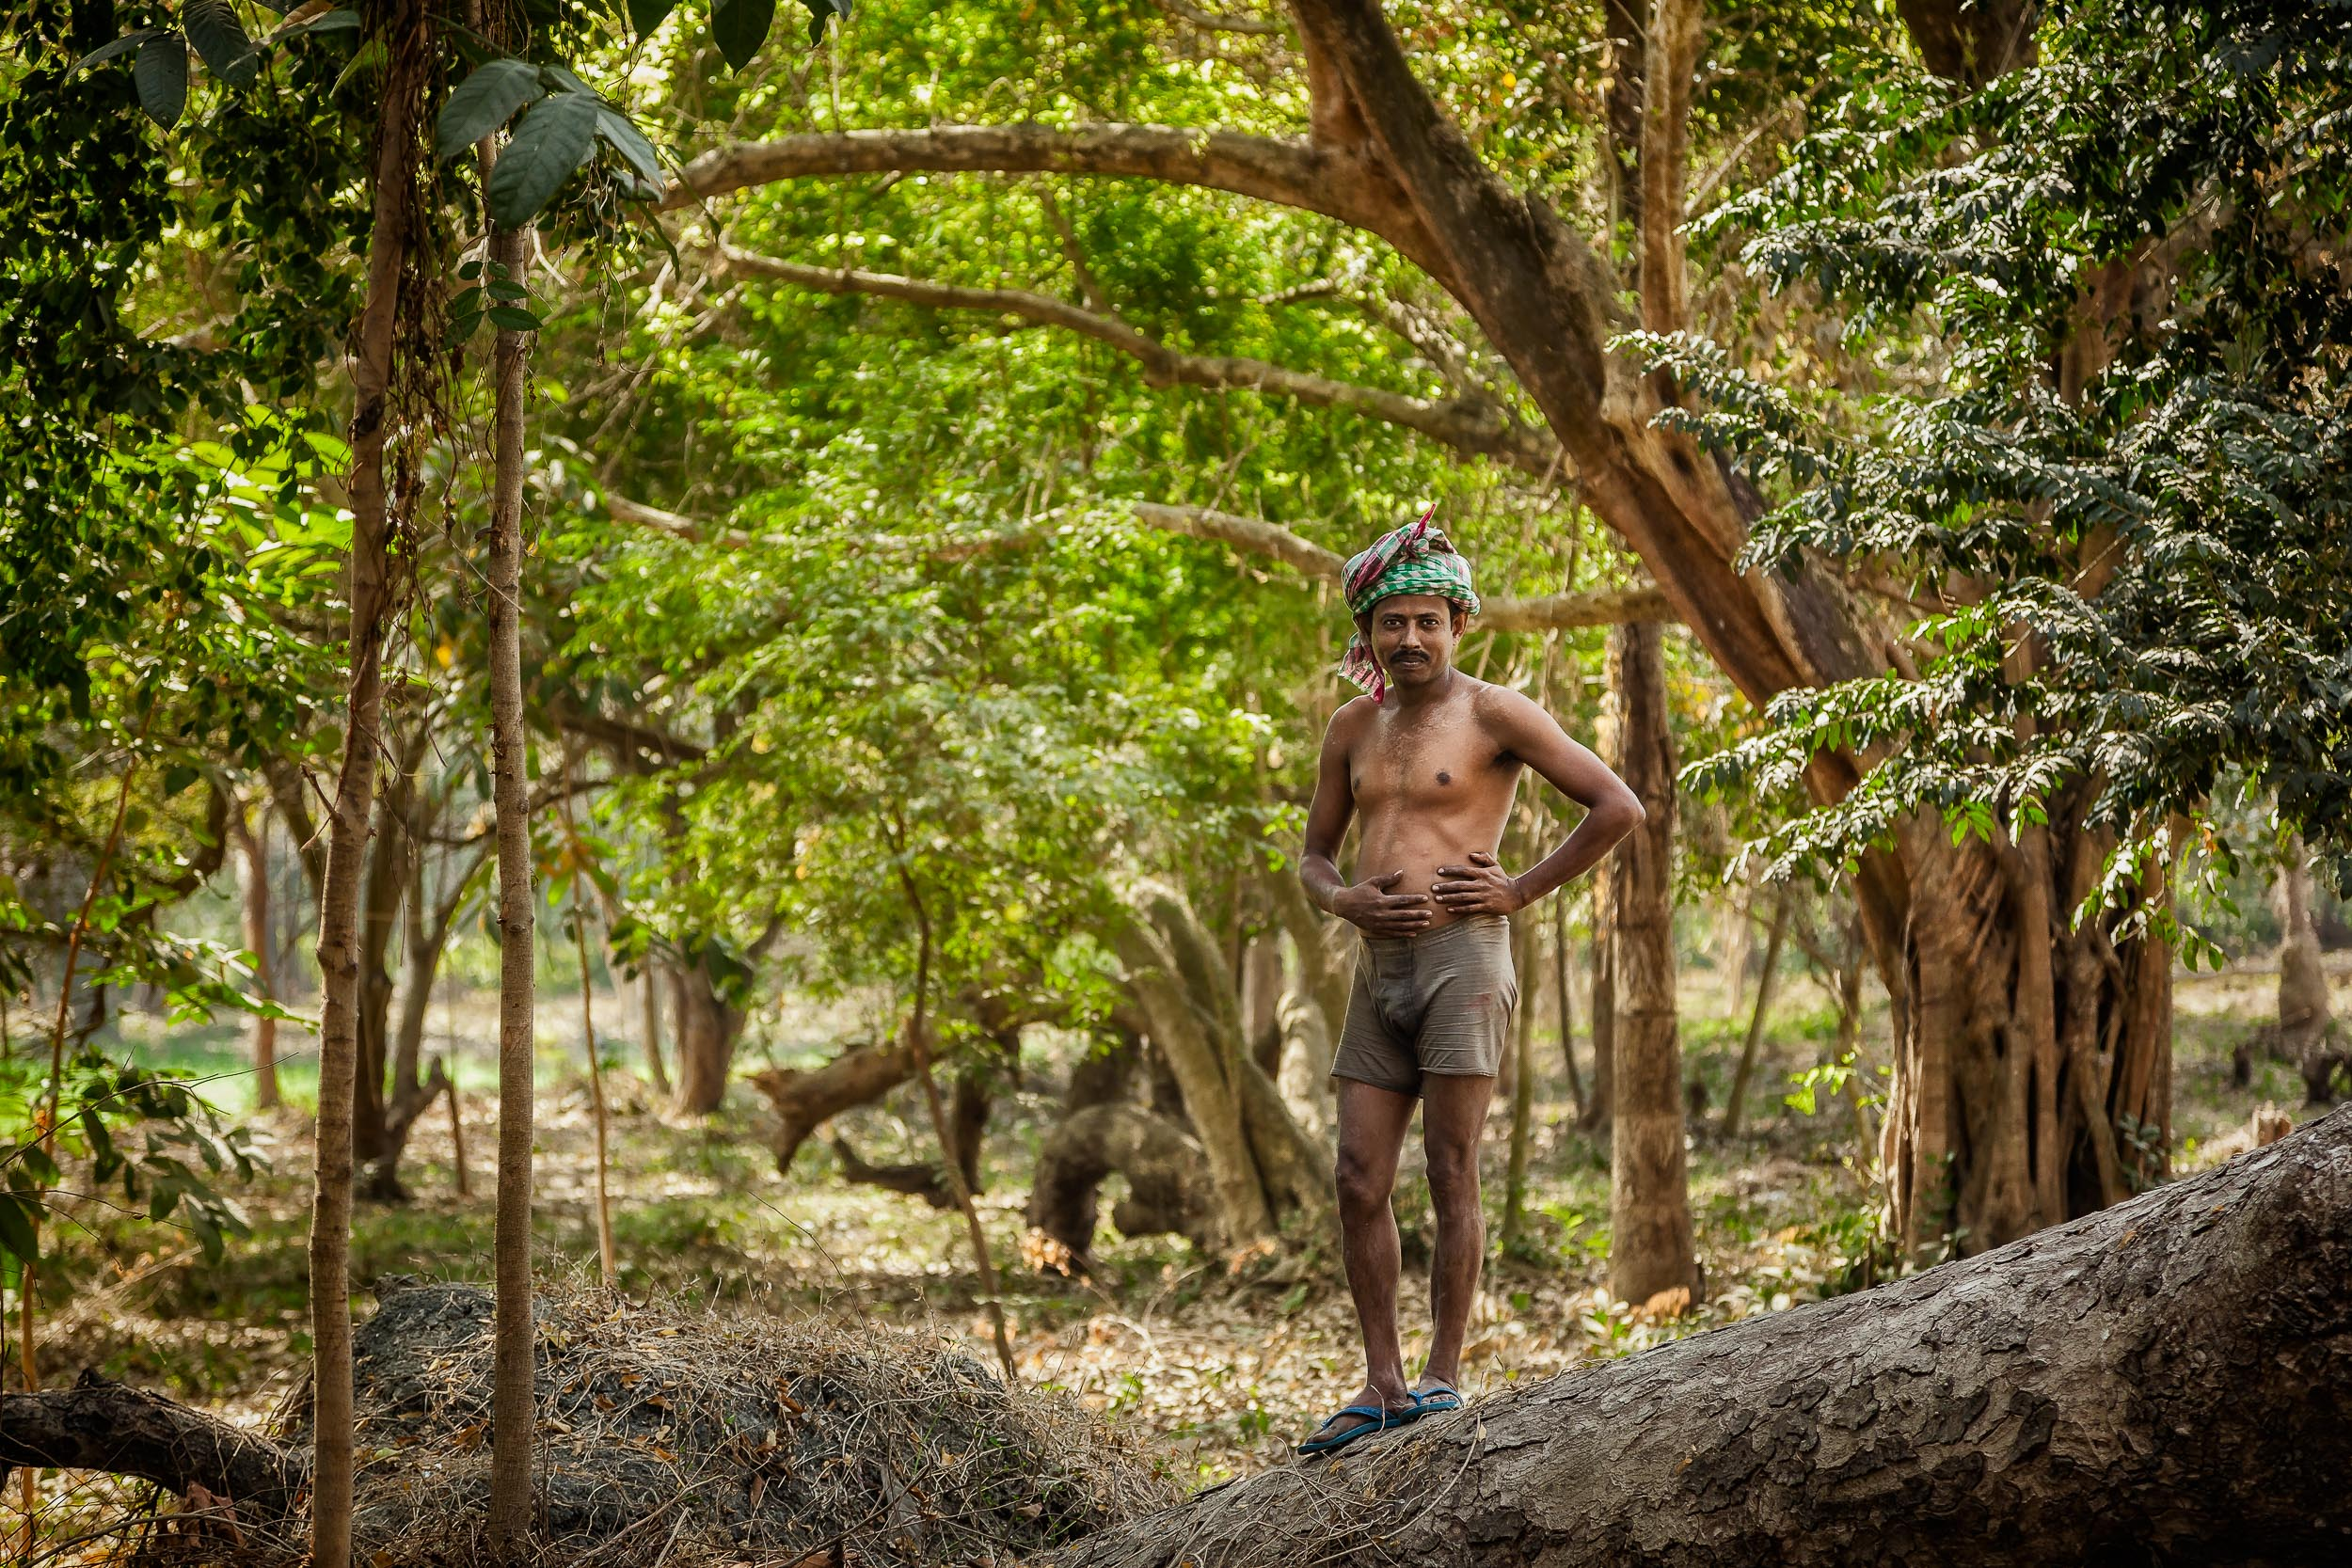 An environmental portrait of a worker I photographed in the grounds of the lovely    Botanical Gardens    in    Kolkata, India   .